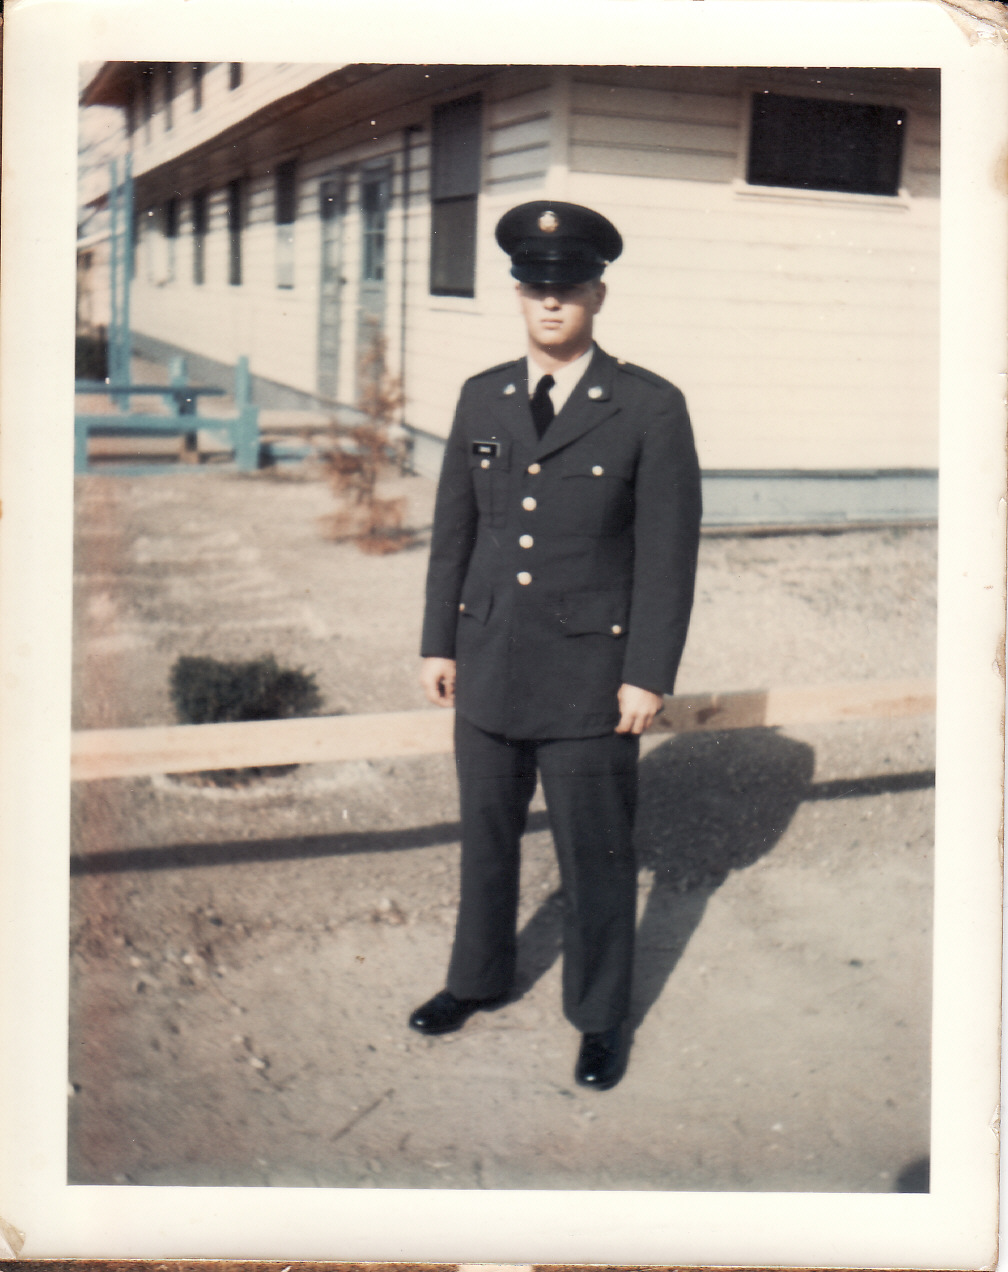 At_Basic_training_-_Ft_Bragg-1966.jpg